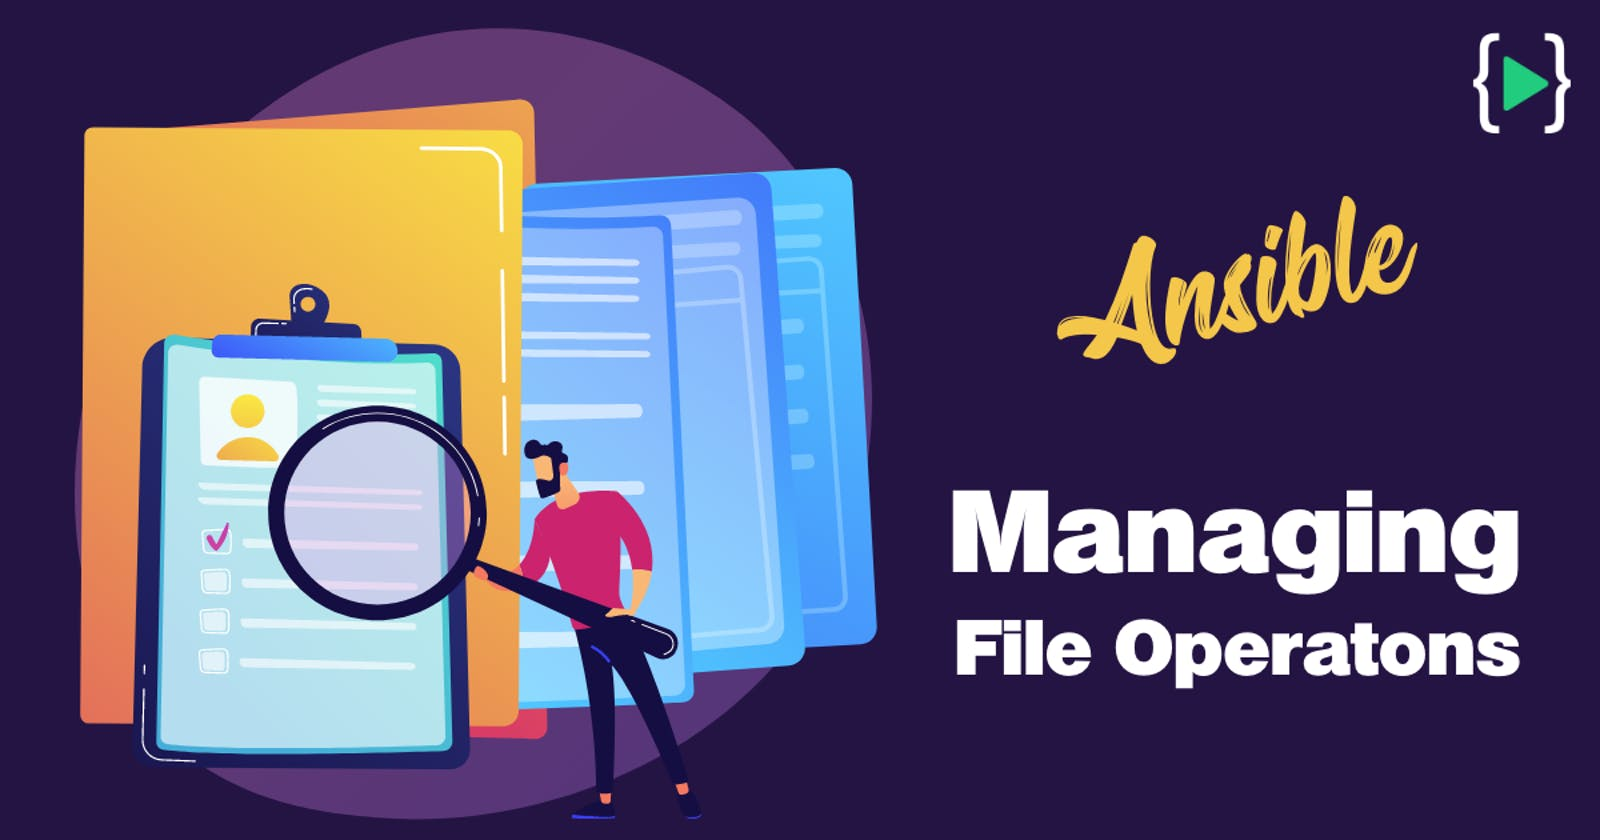 Managing File Operations With Ansible